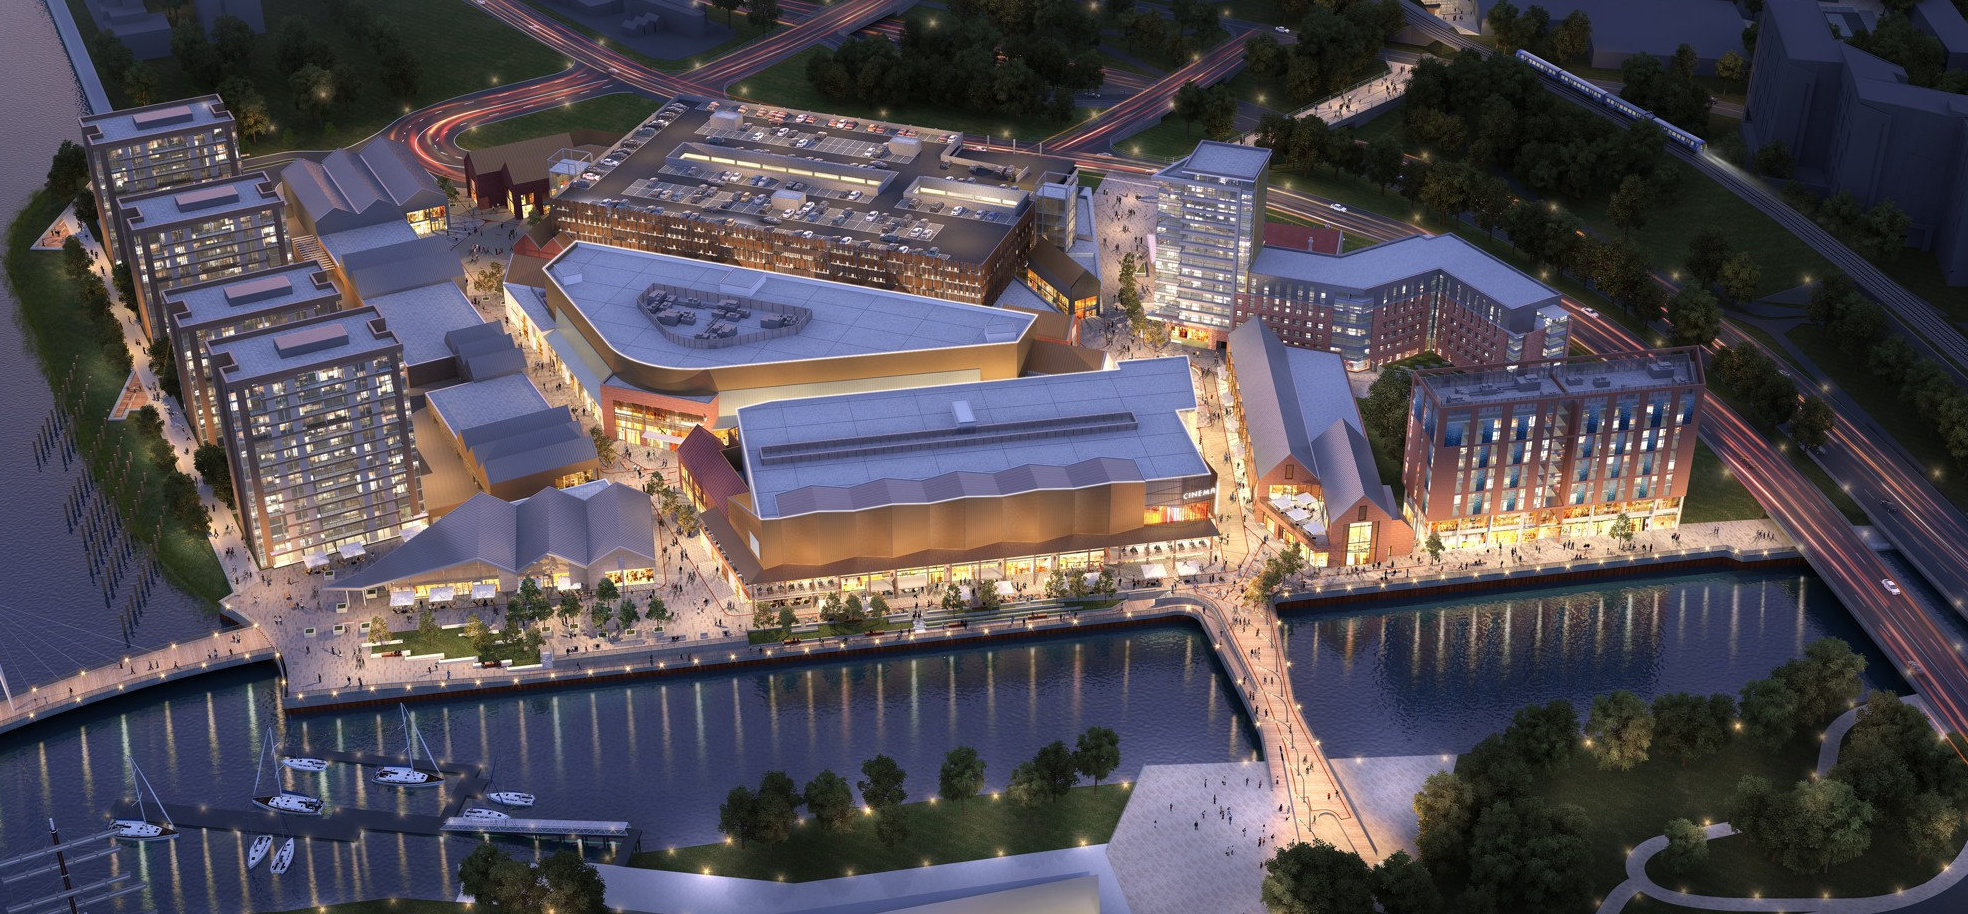 The Glasgow Harbour Lifestyle Outlet will create retail and construction jobs